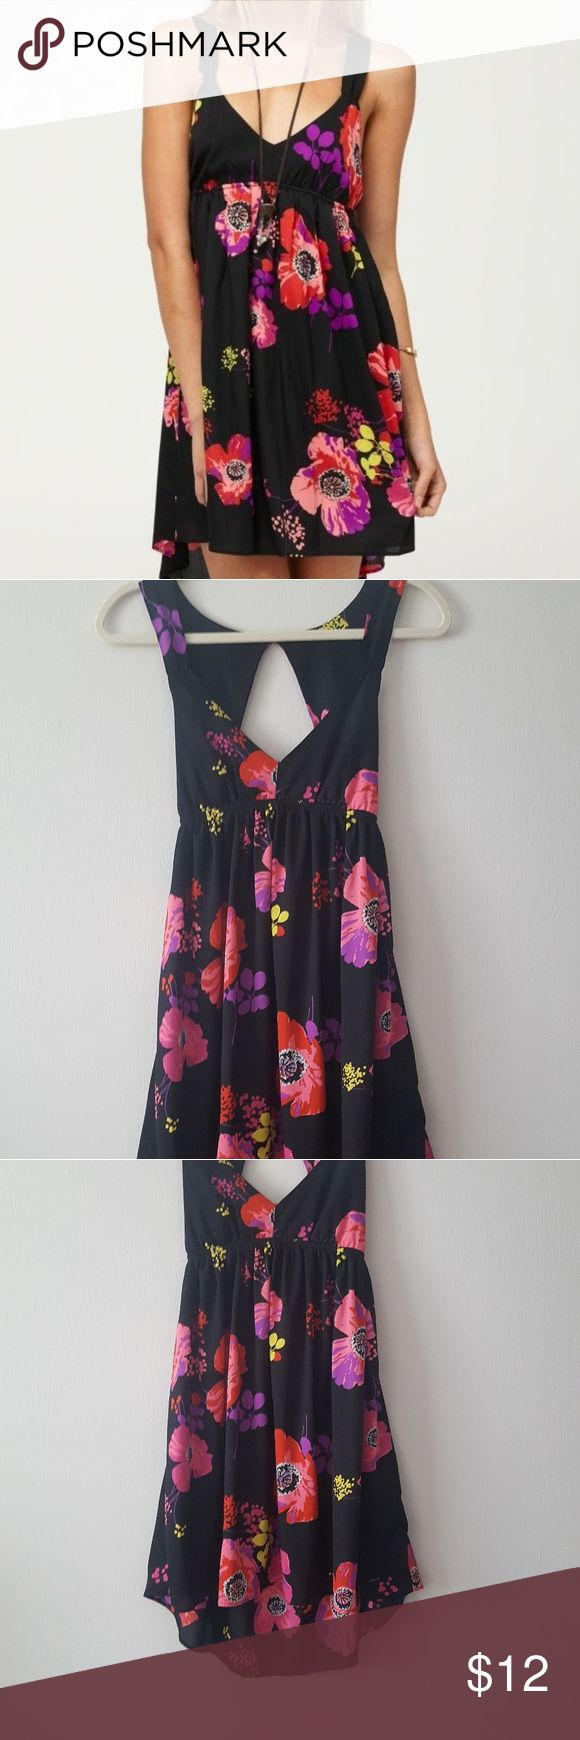 ROXY FLORAL 'LOVE SEEKER DRESS' XS Surf brand Roxy multi-colored floral beachy dress Gently used, good condition  Sleeveless, empire waist mini Slight high-low hem Cut out back with elastic fitting through back Back neck button closure **not lined 100% polyester Approximately 32.5 inches in length front Approximately 36.5 inches in length back Roxy Dresses